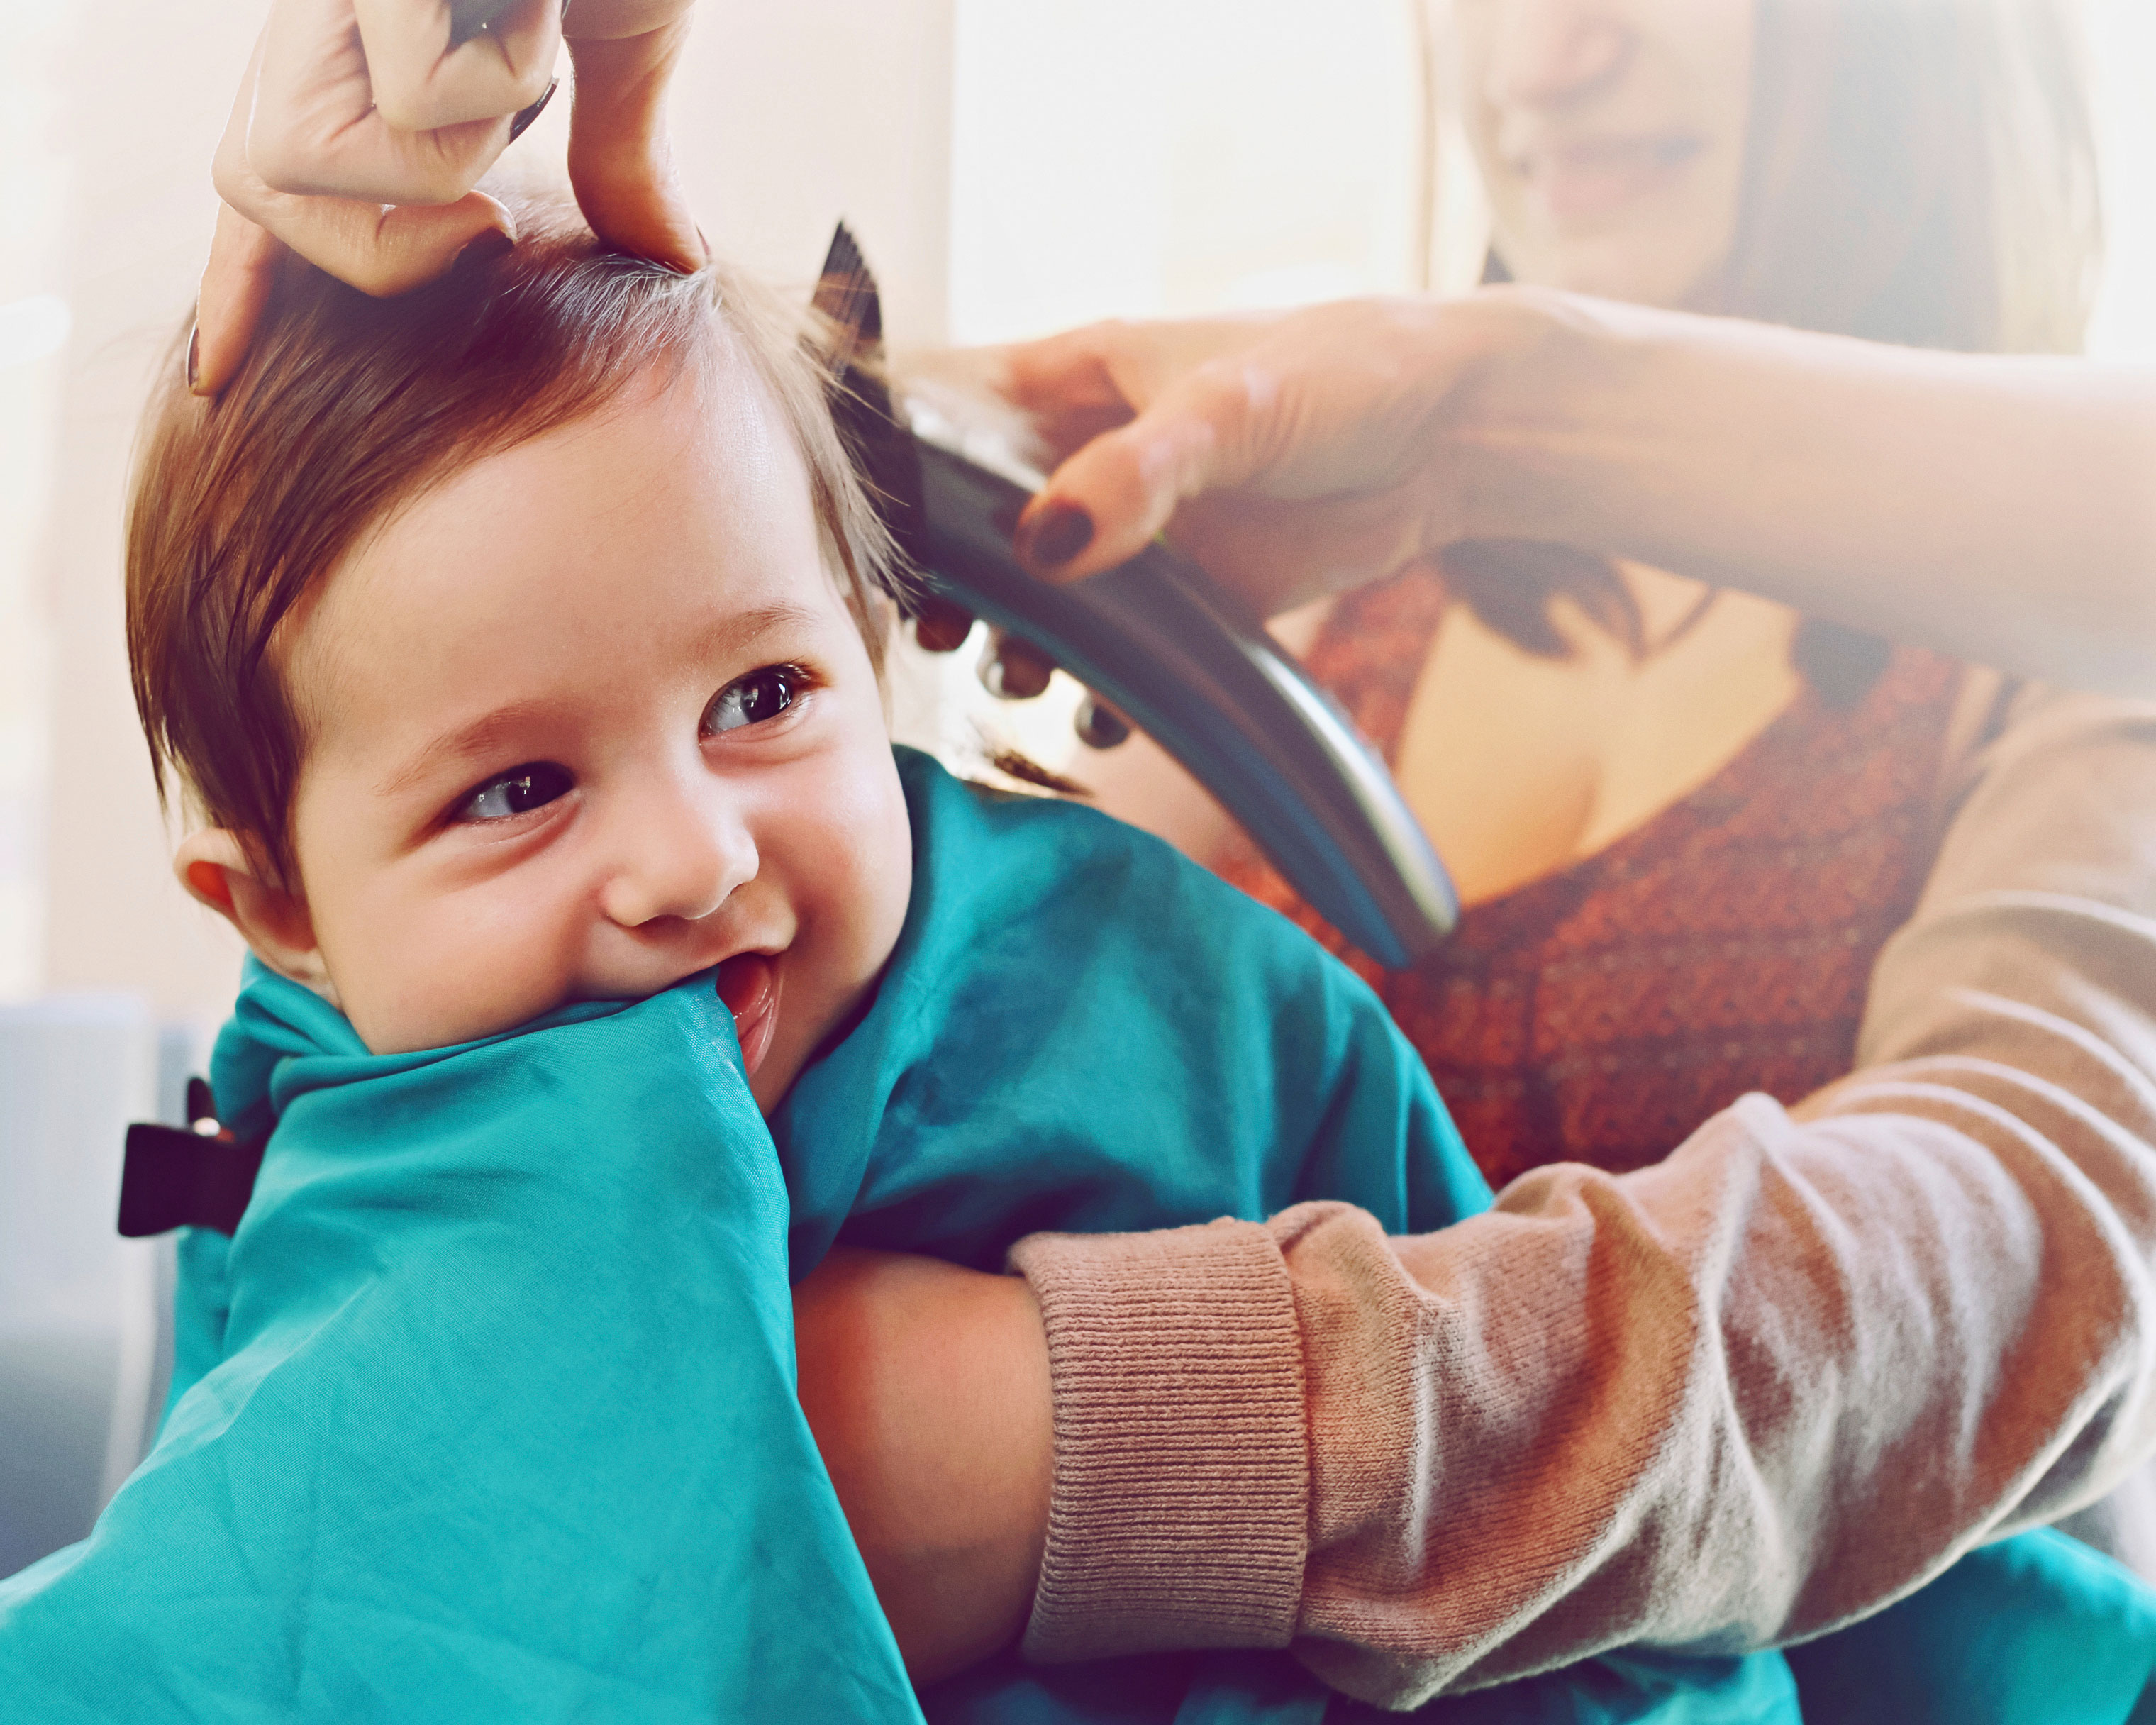 7 Tips for Stylists Who Work With Child Clients